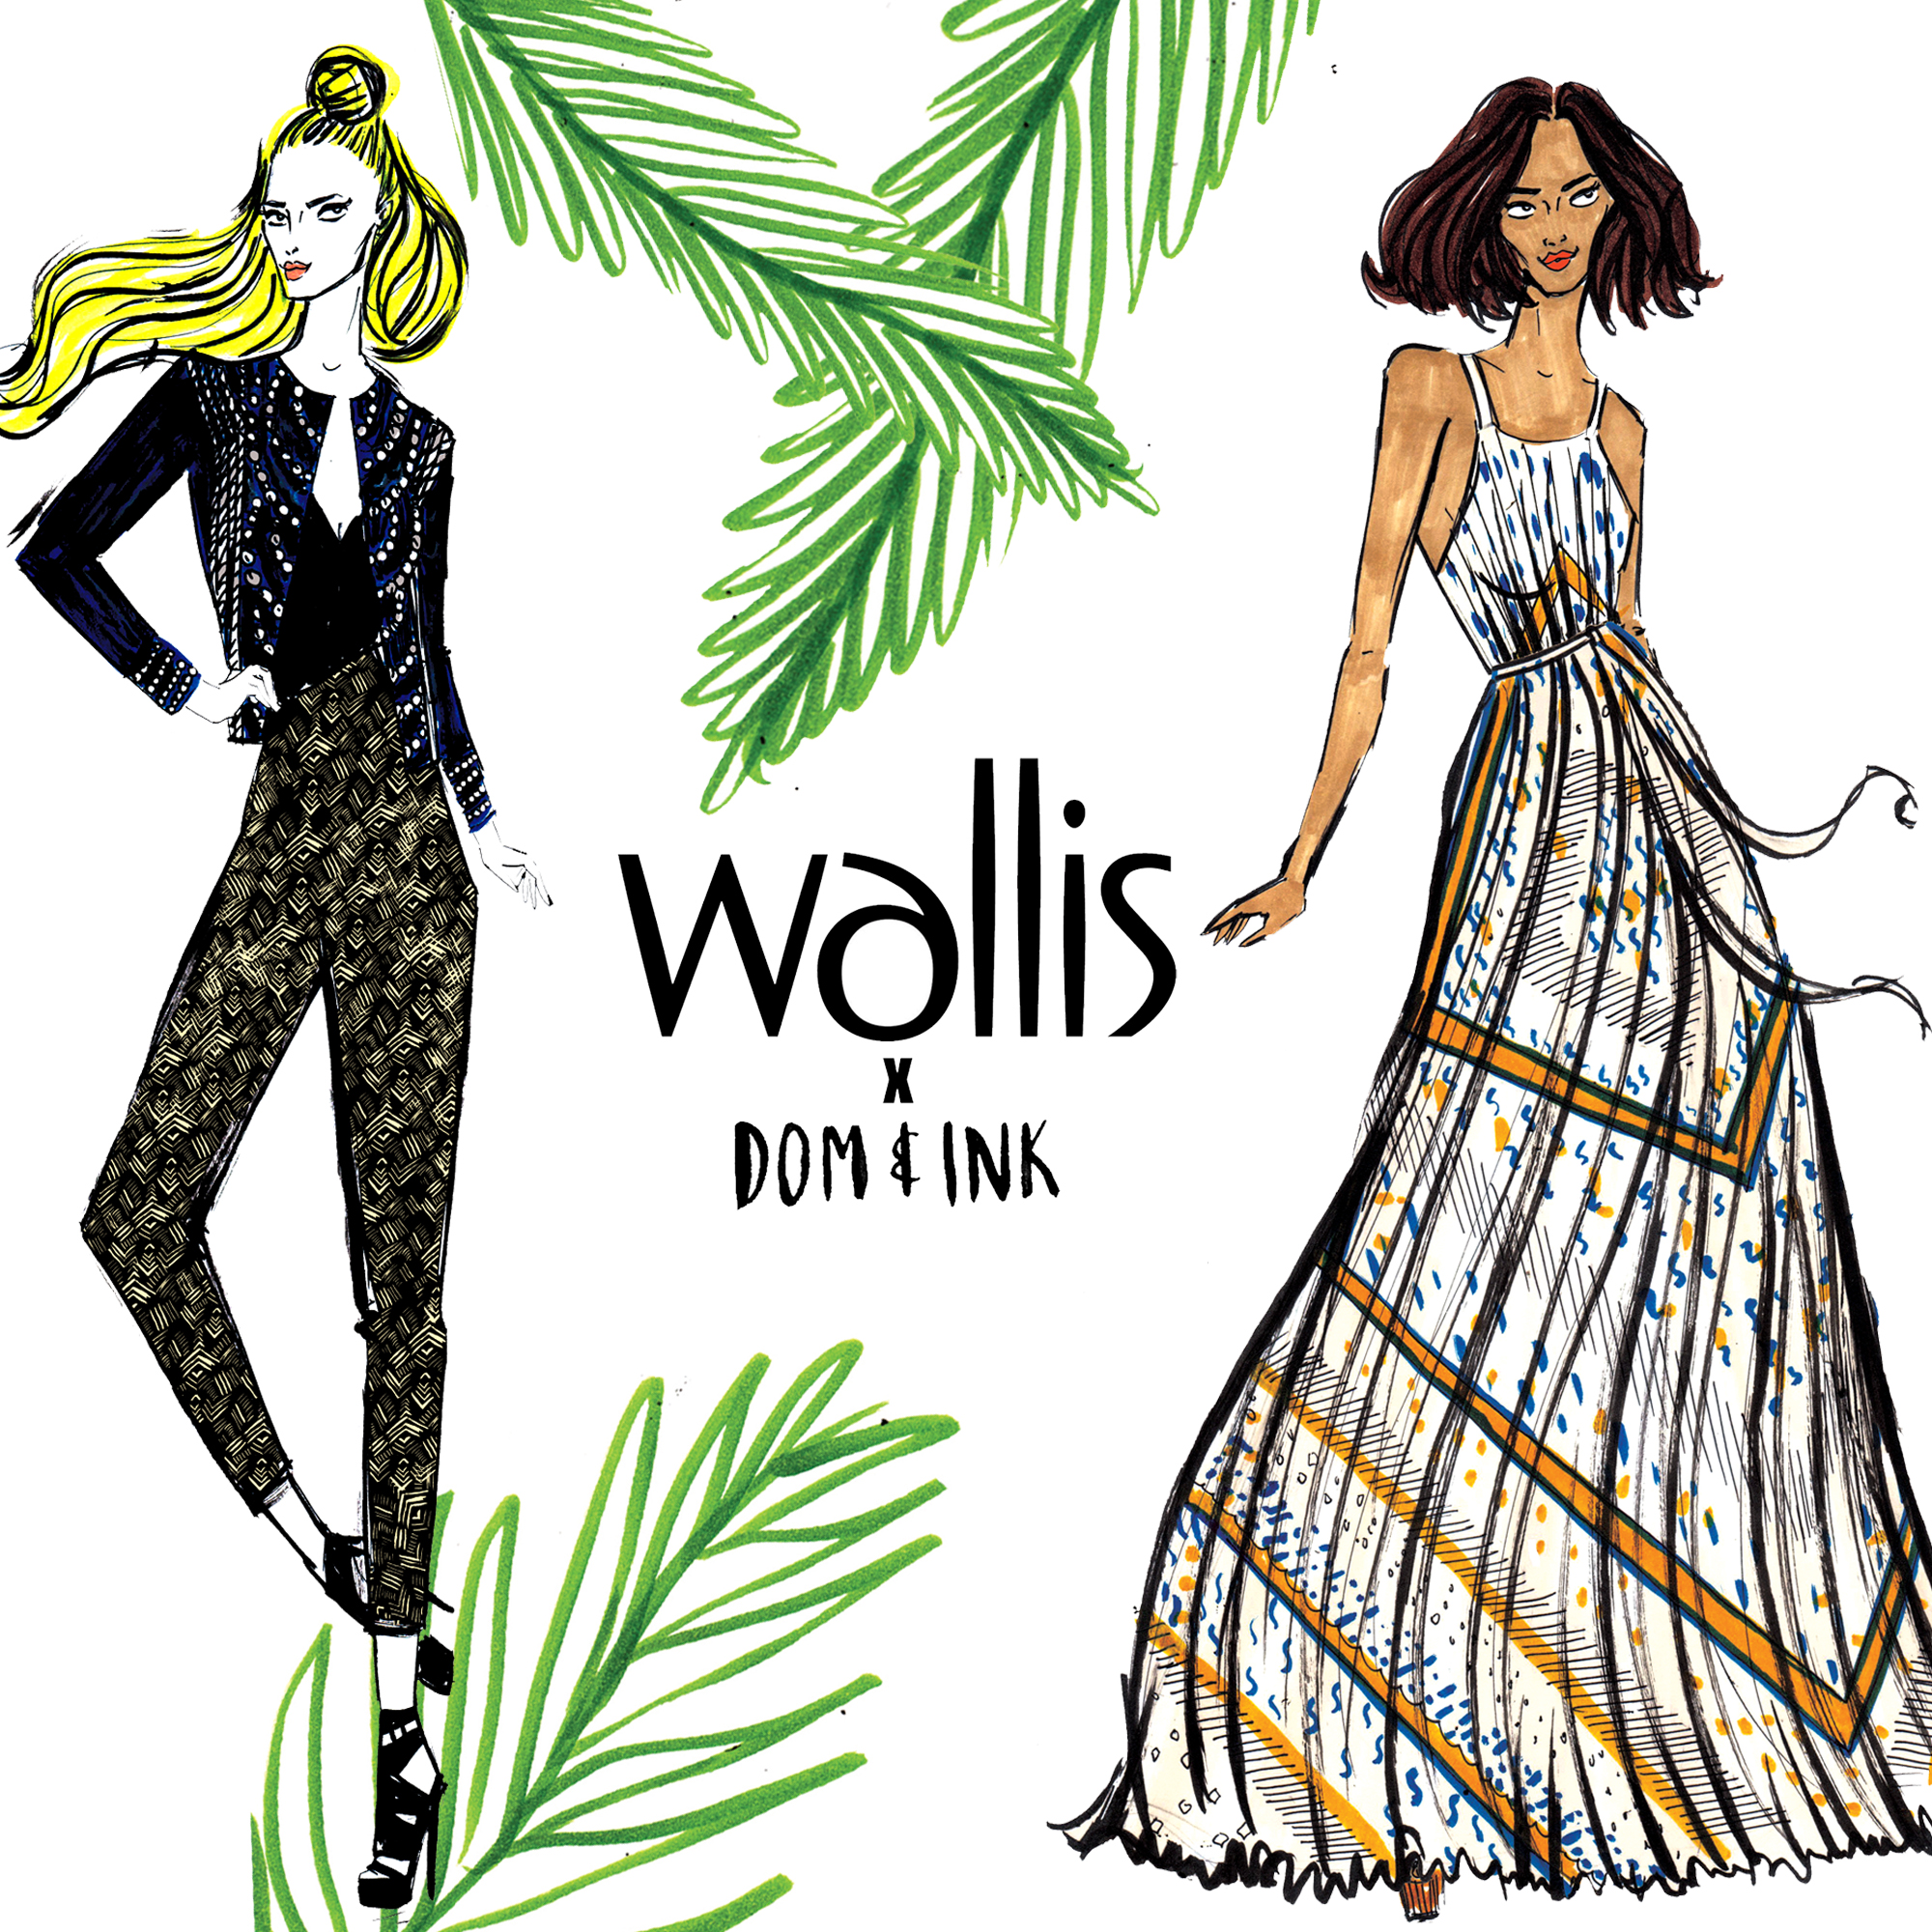 Wallis S/S16 EVENT